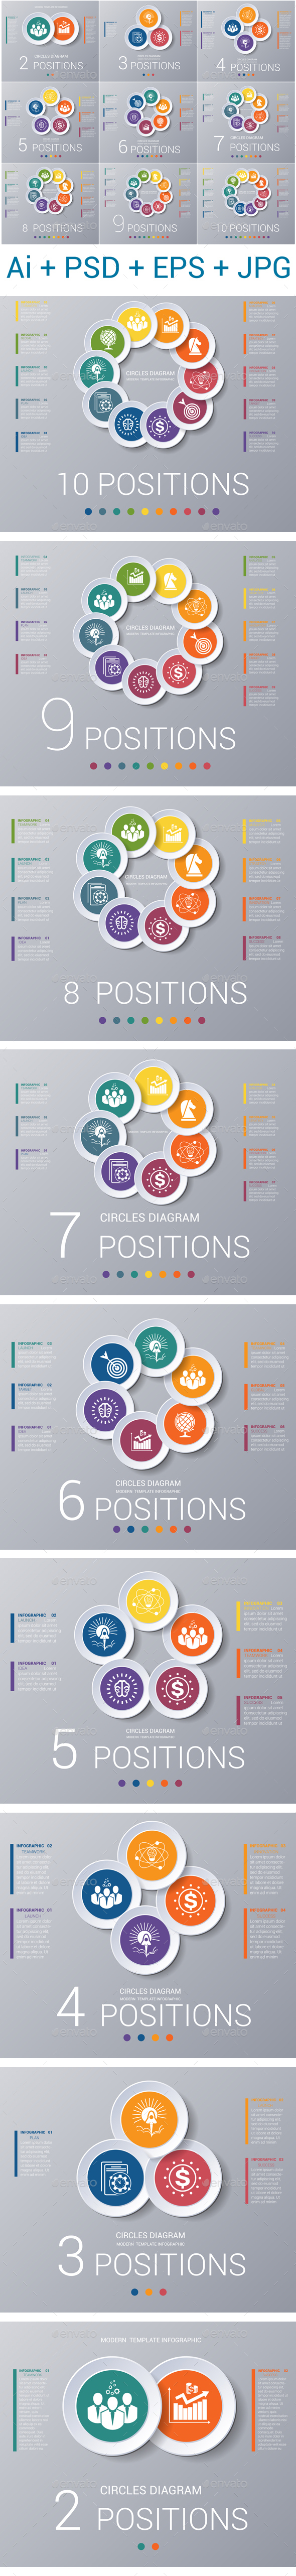 Circles diagram, data Elements For Template infographics 2,3,4,5,6,7,8,9,10 positions. - Infographics